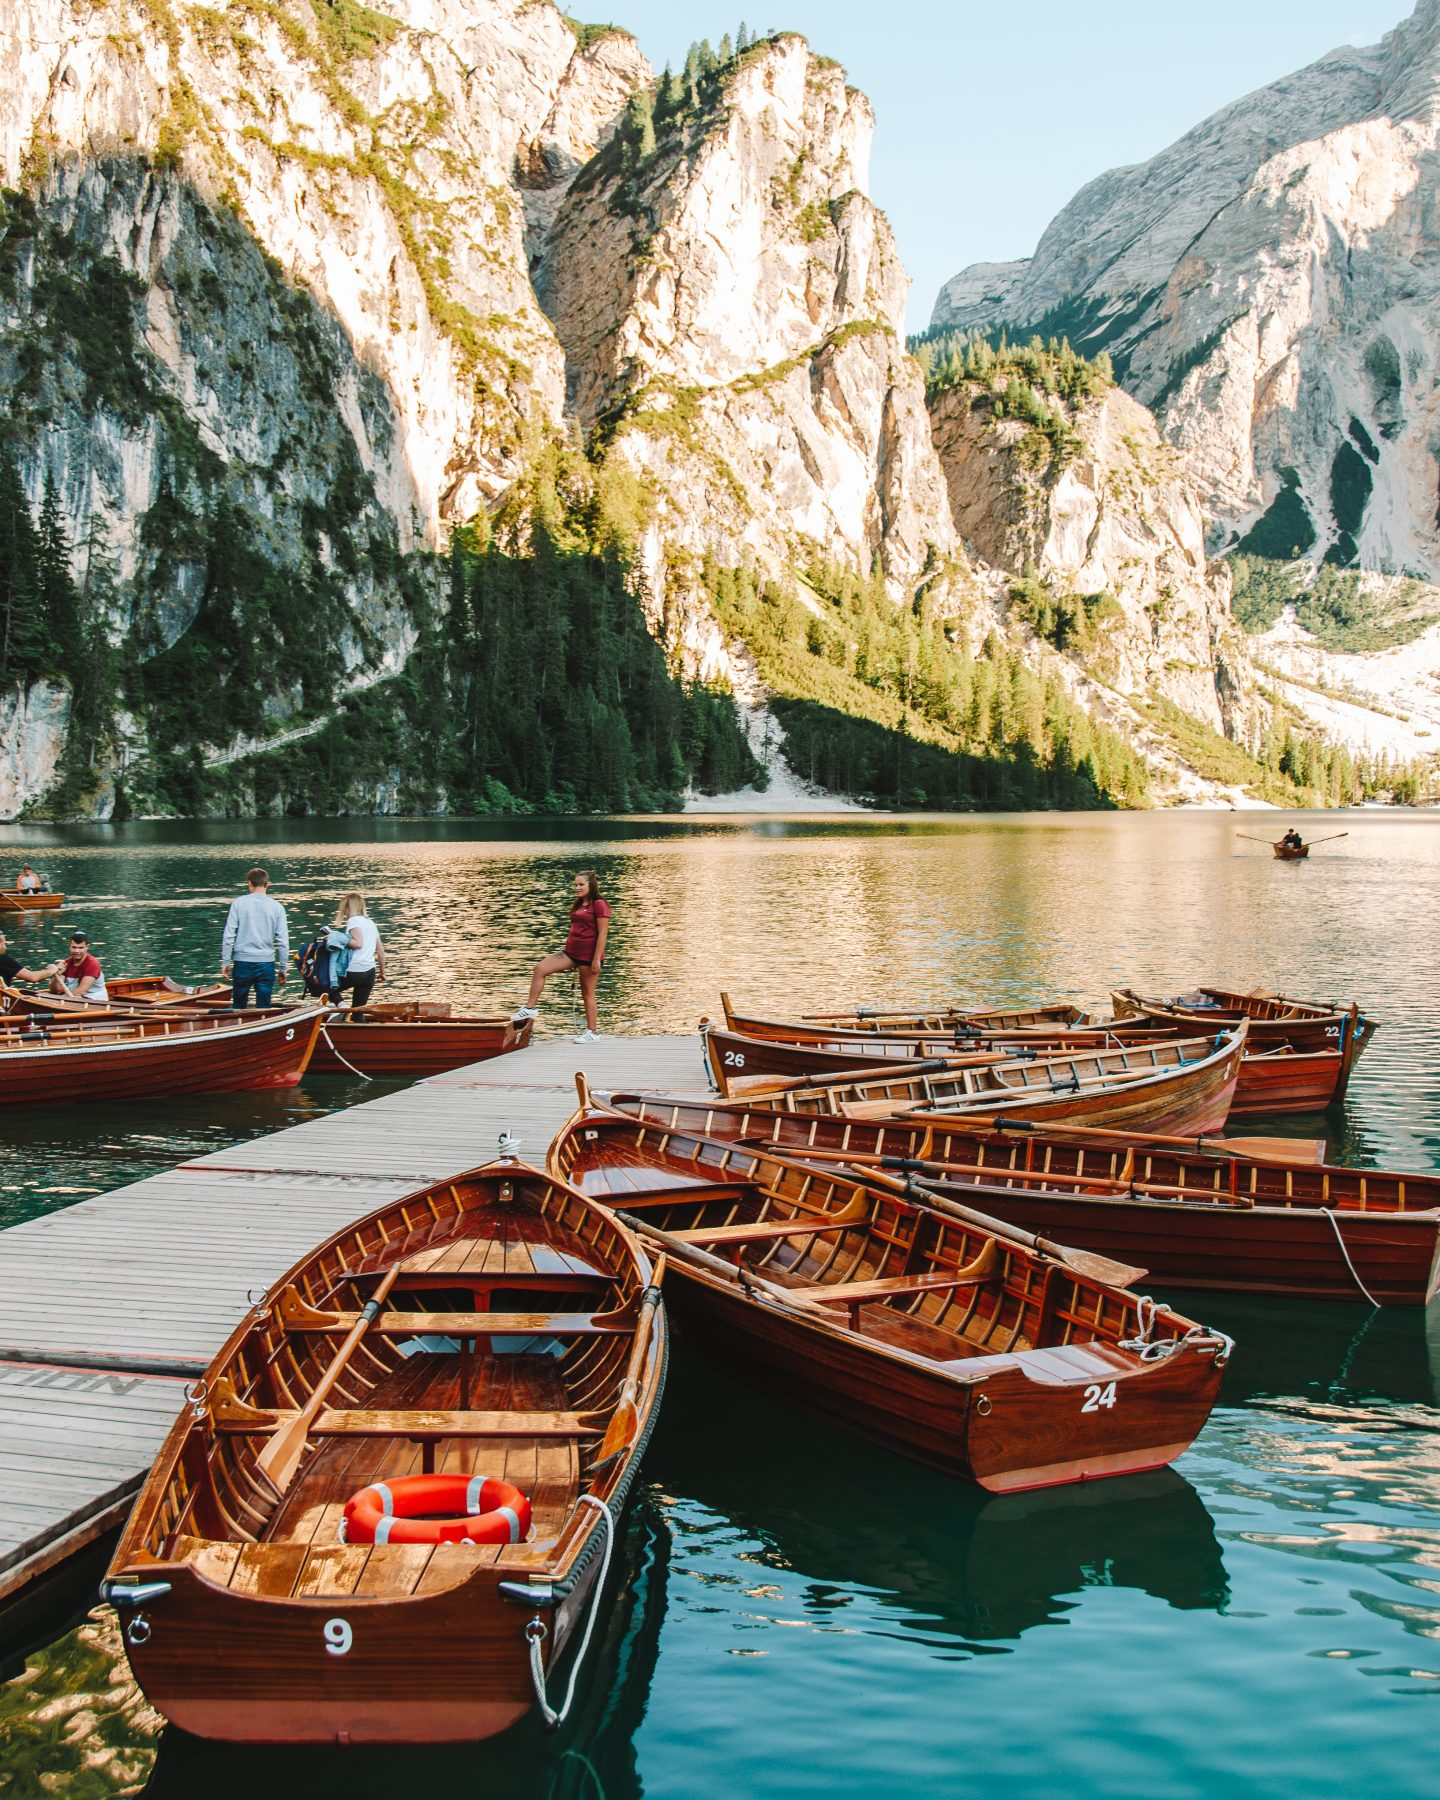 boats for rent at lago di braies italy